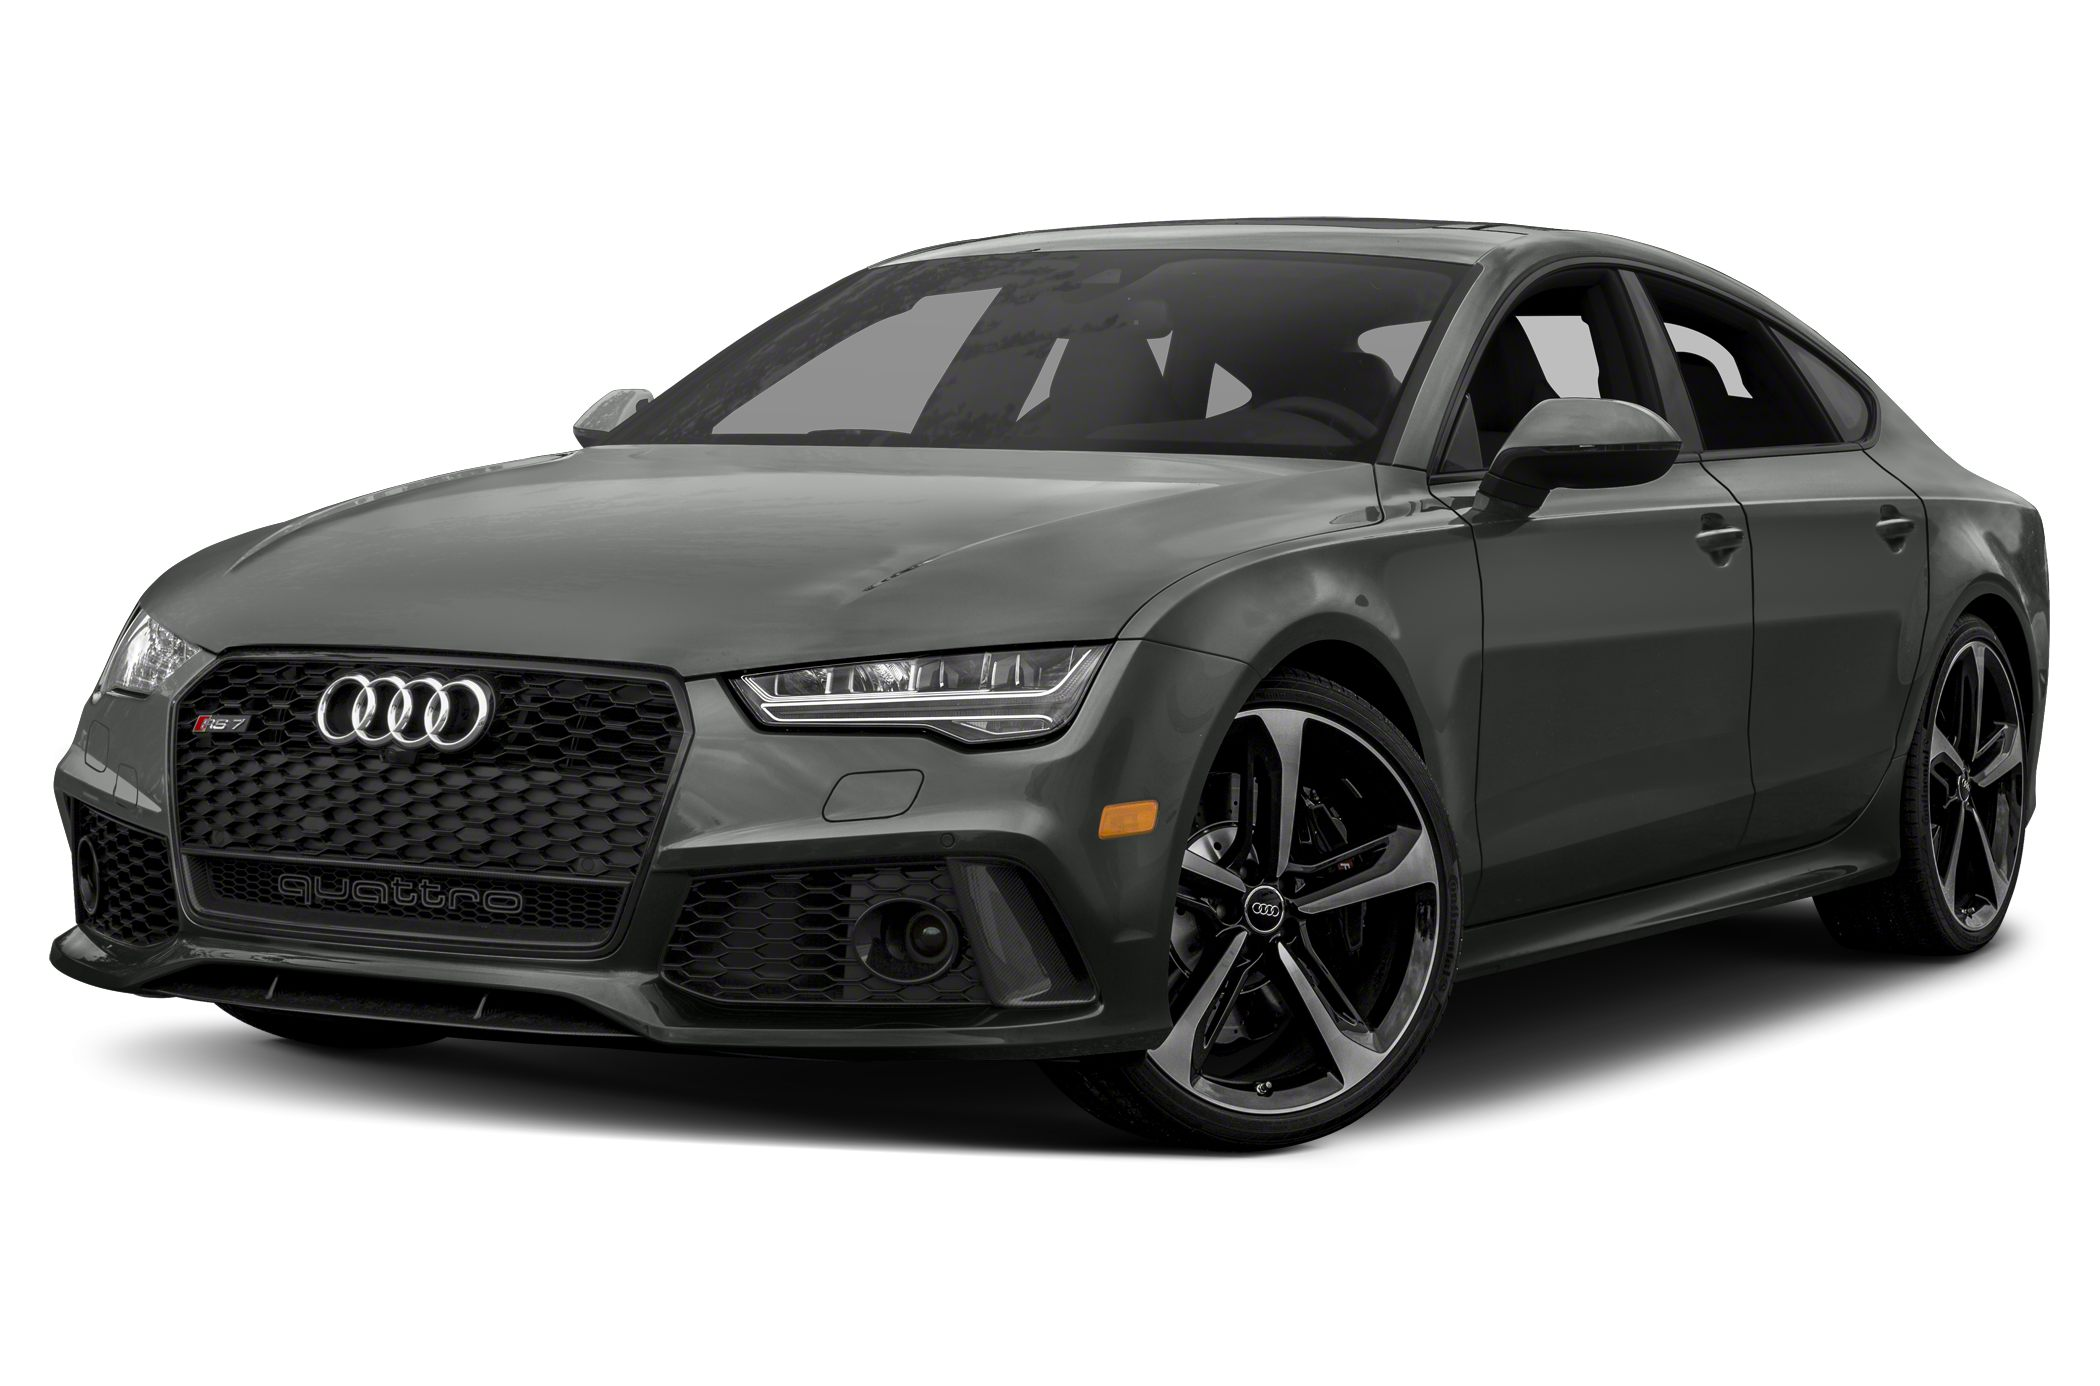 2016 Audi Rs 7 4 0t Prestige 4dr All Wheel Drive Quattro Sportback Pricing And Options